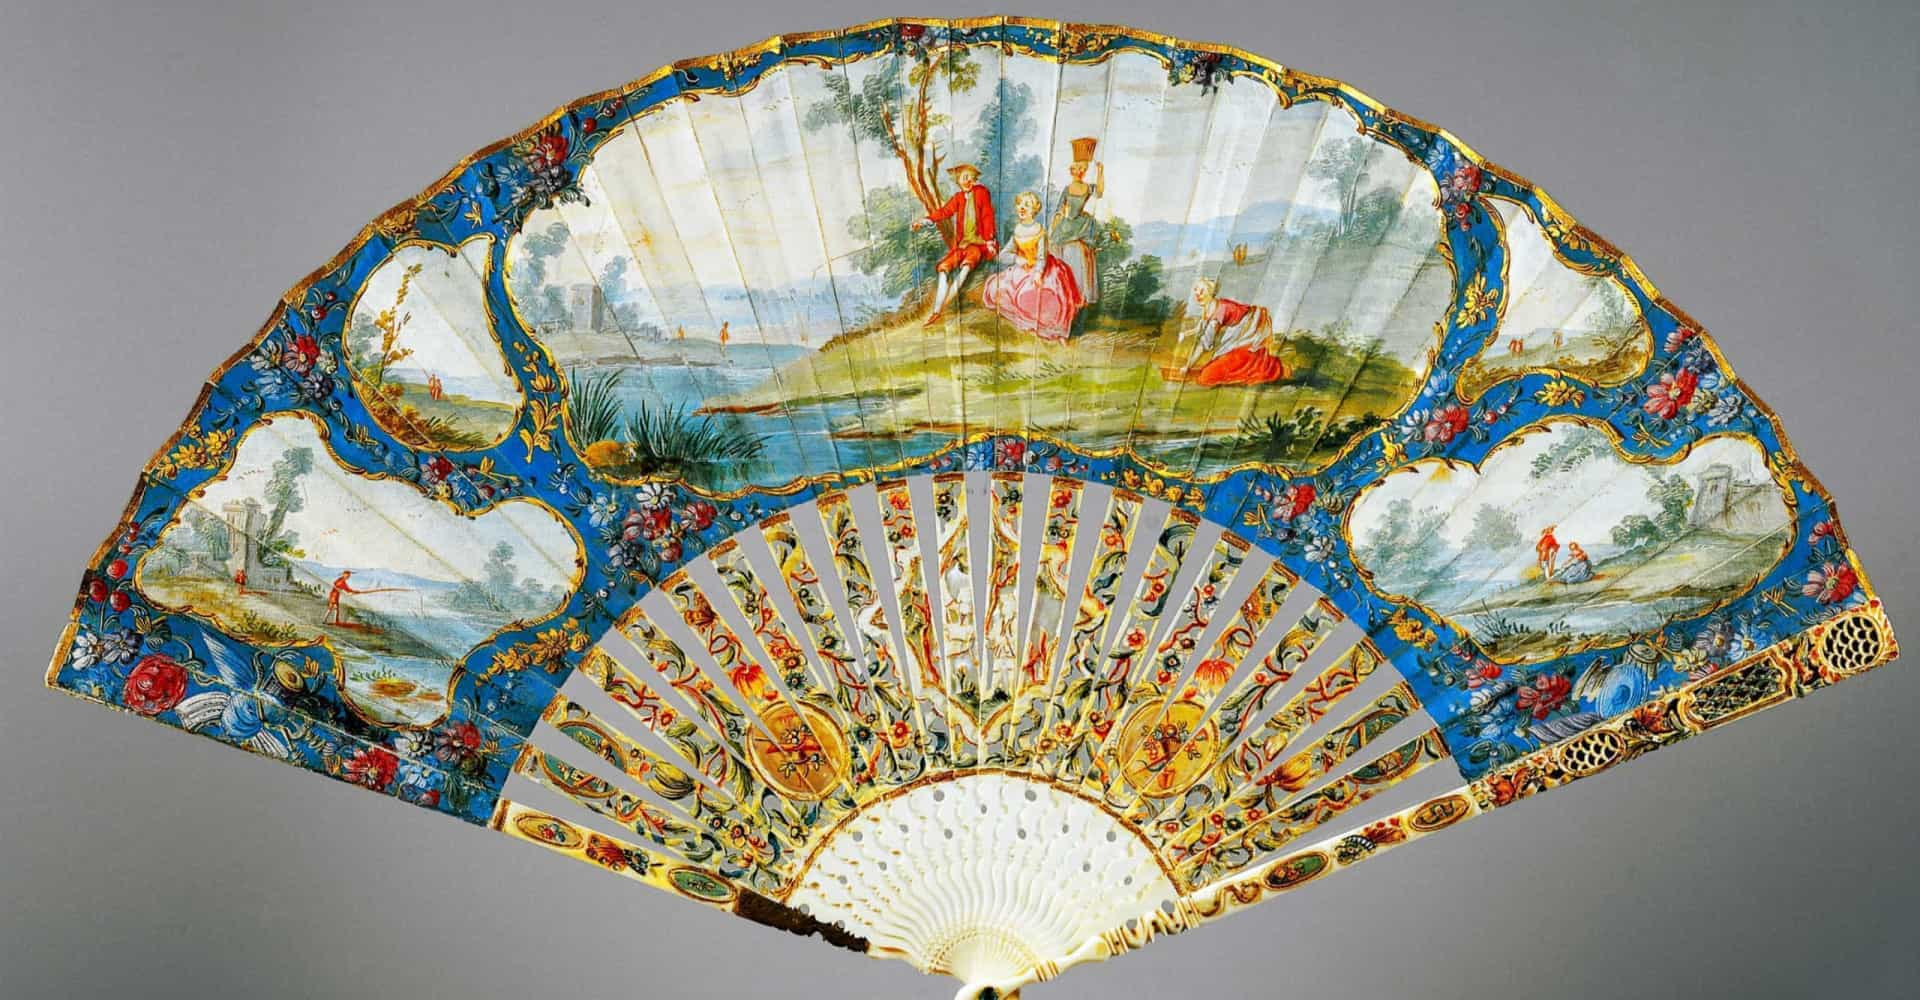 The history behind the fan, one of the world's oldest fashion accessories